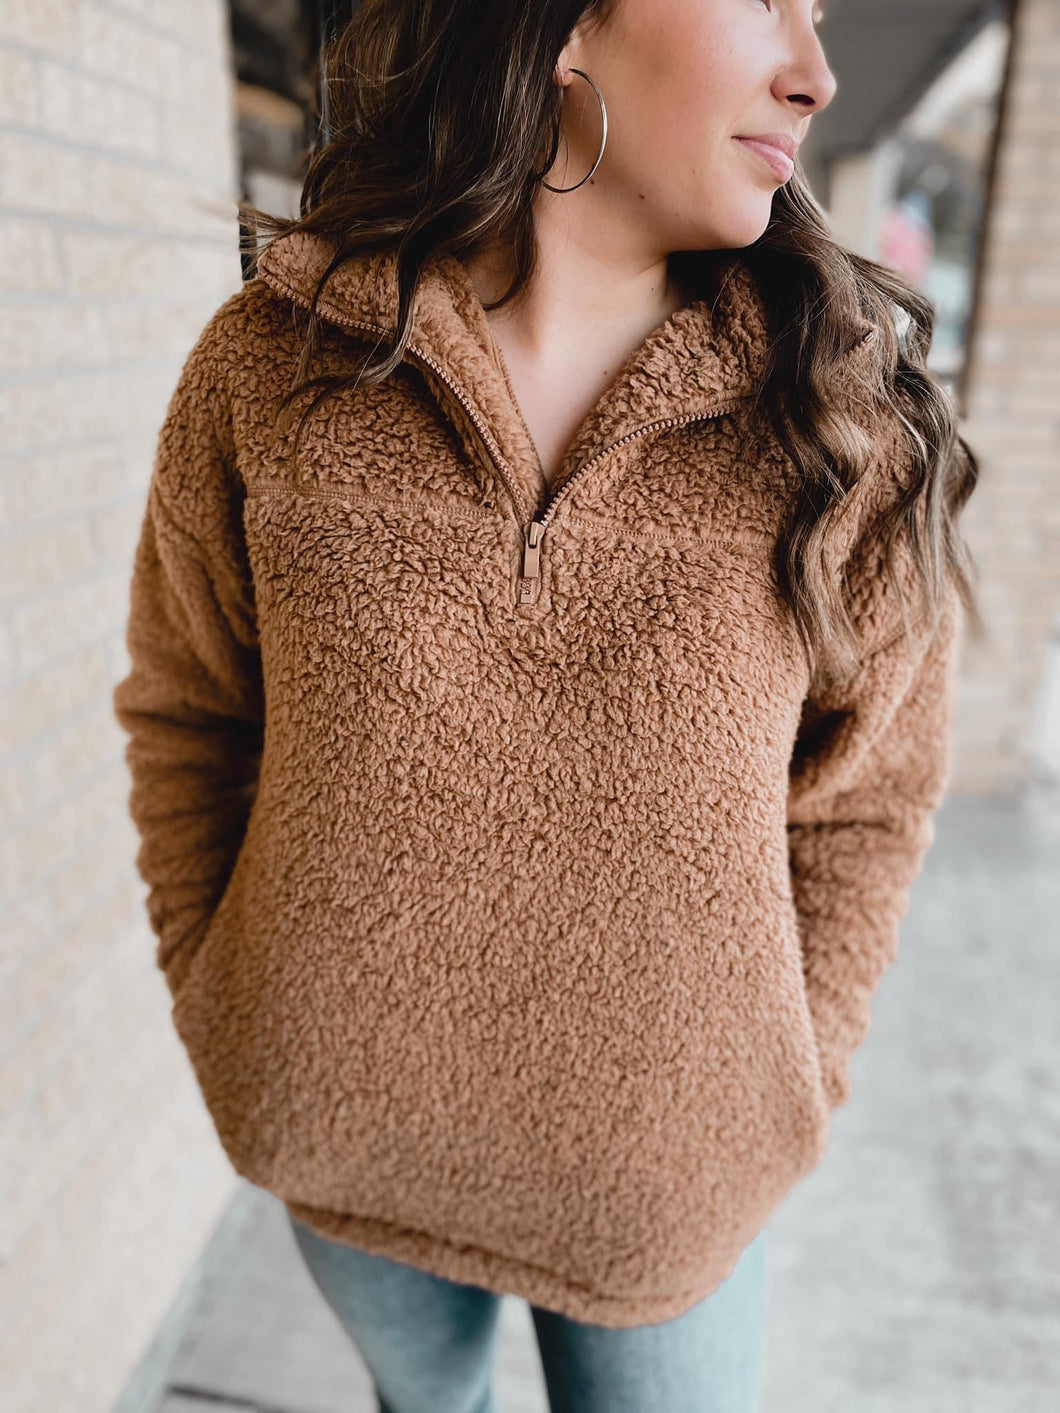 Sherpa Pullover - DEEP CAMEL-Sherpa-ZENANA-blackfriday, DOORBUSTER, november2020, pink Friday, Sherpa, Sherpa sale-The Twisted Chandelier